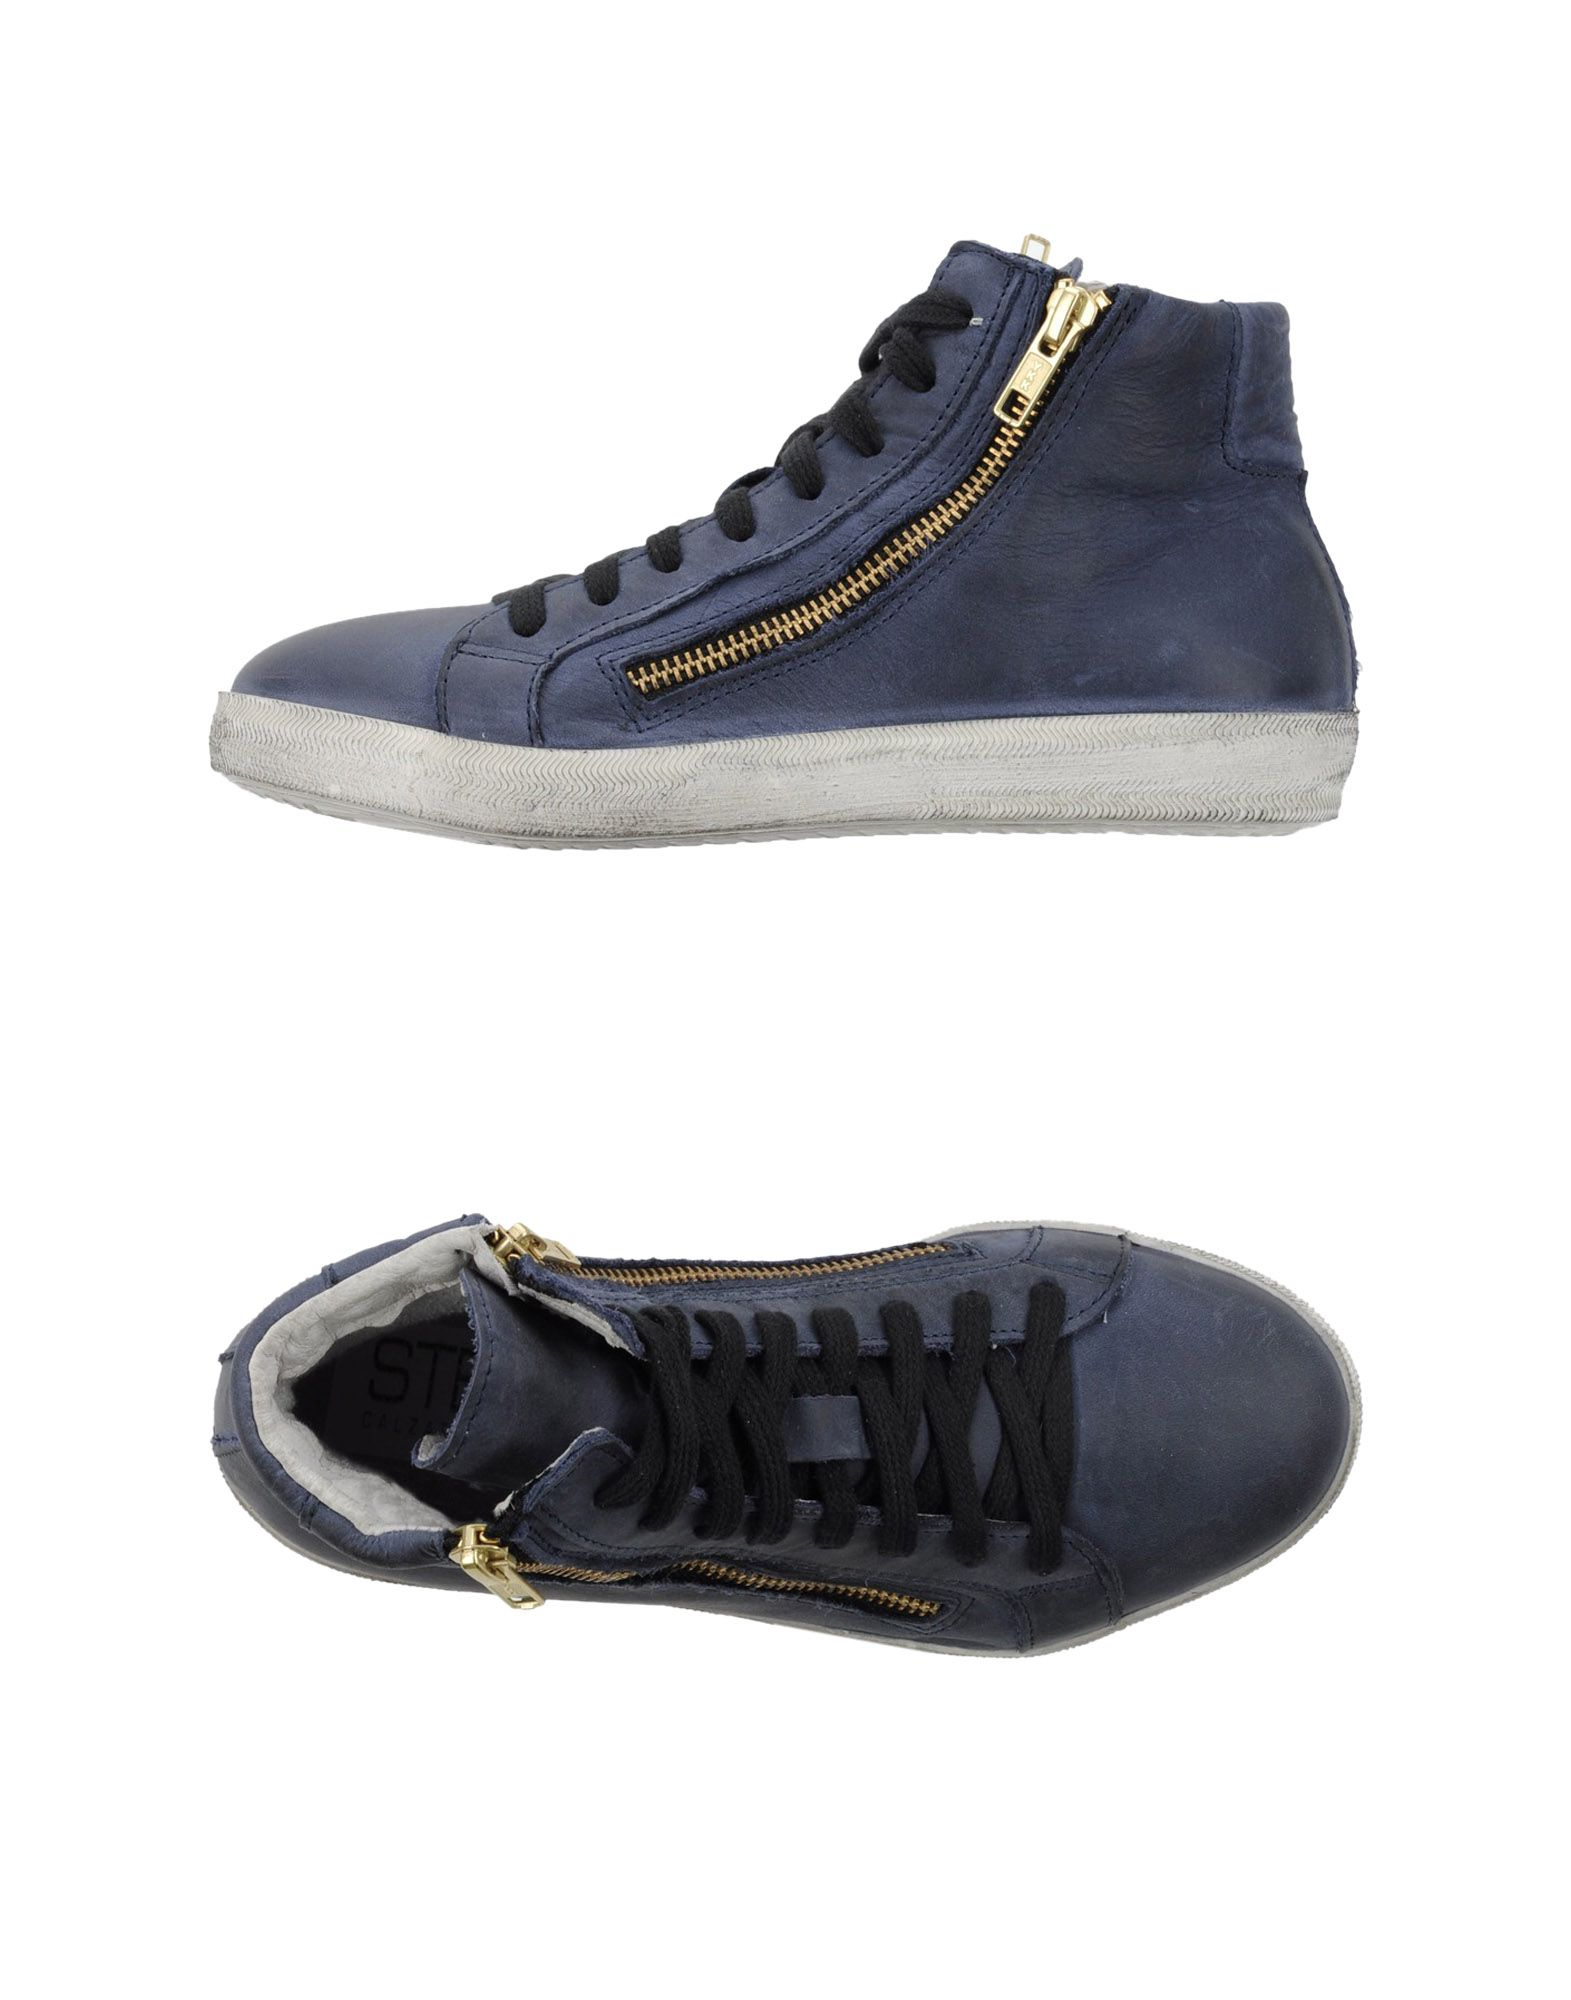 Jeannot Shoes Uk